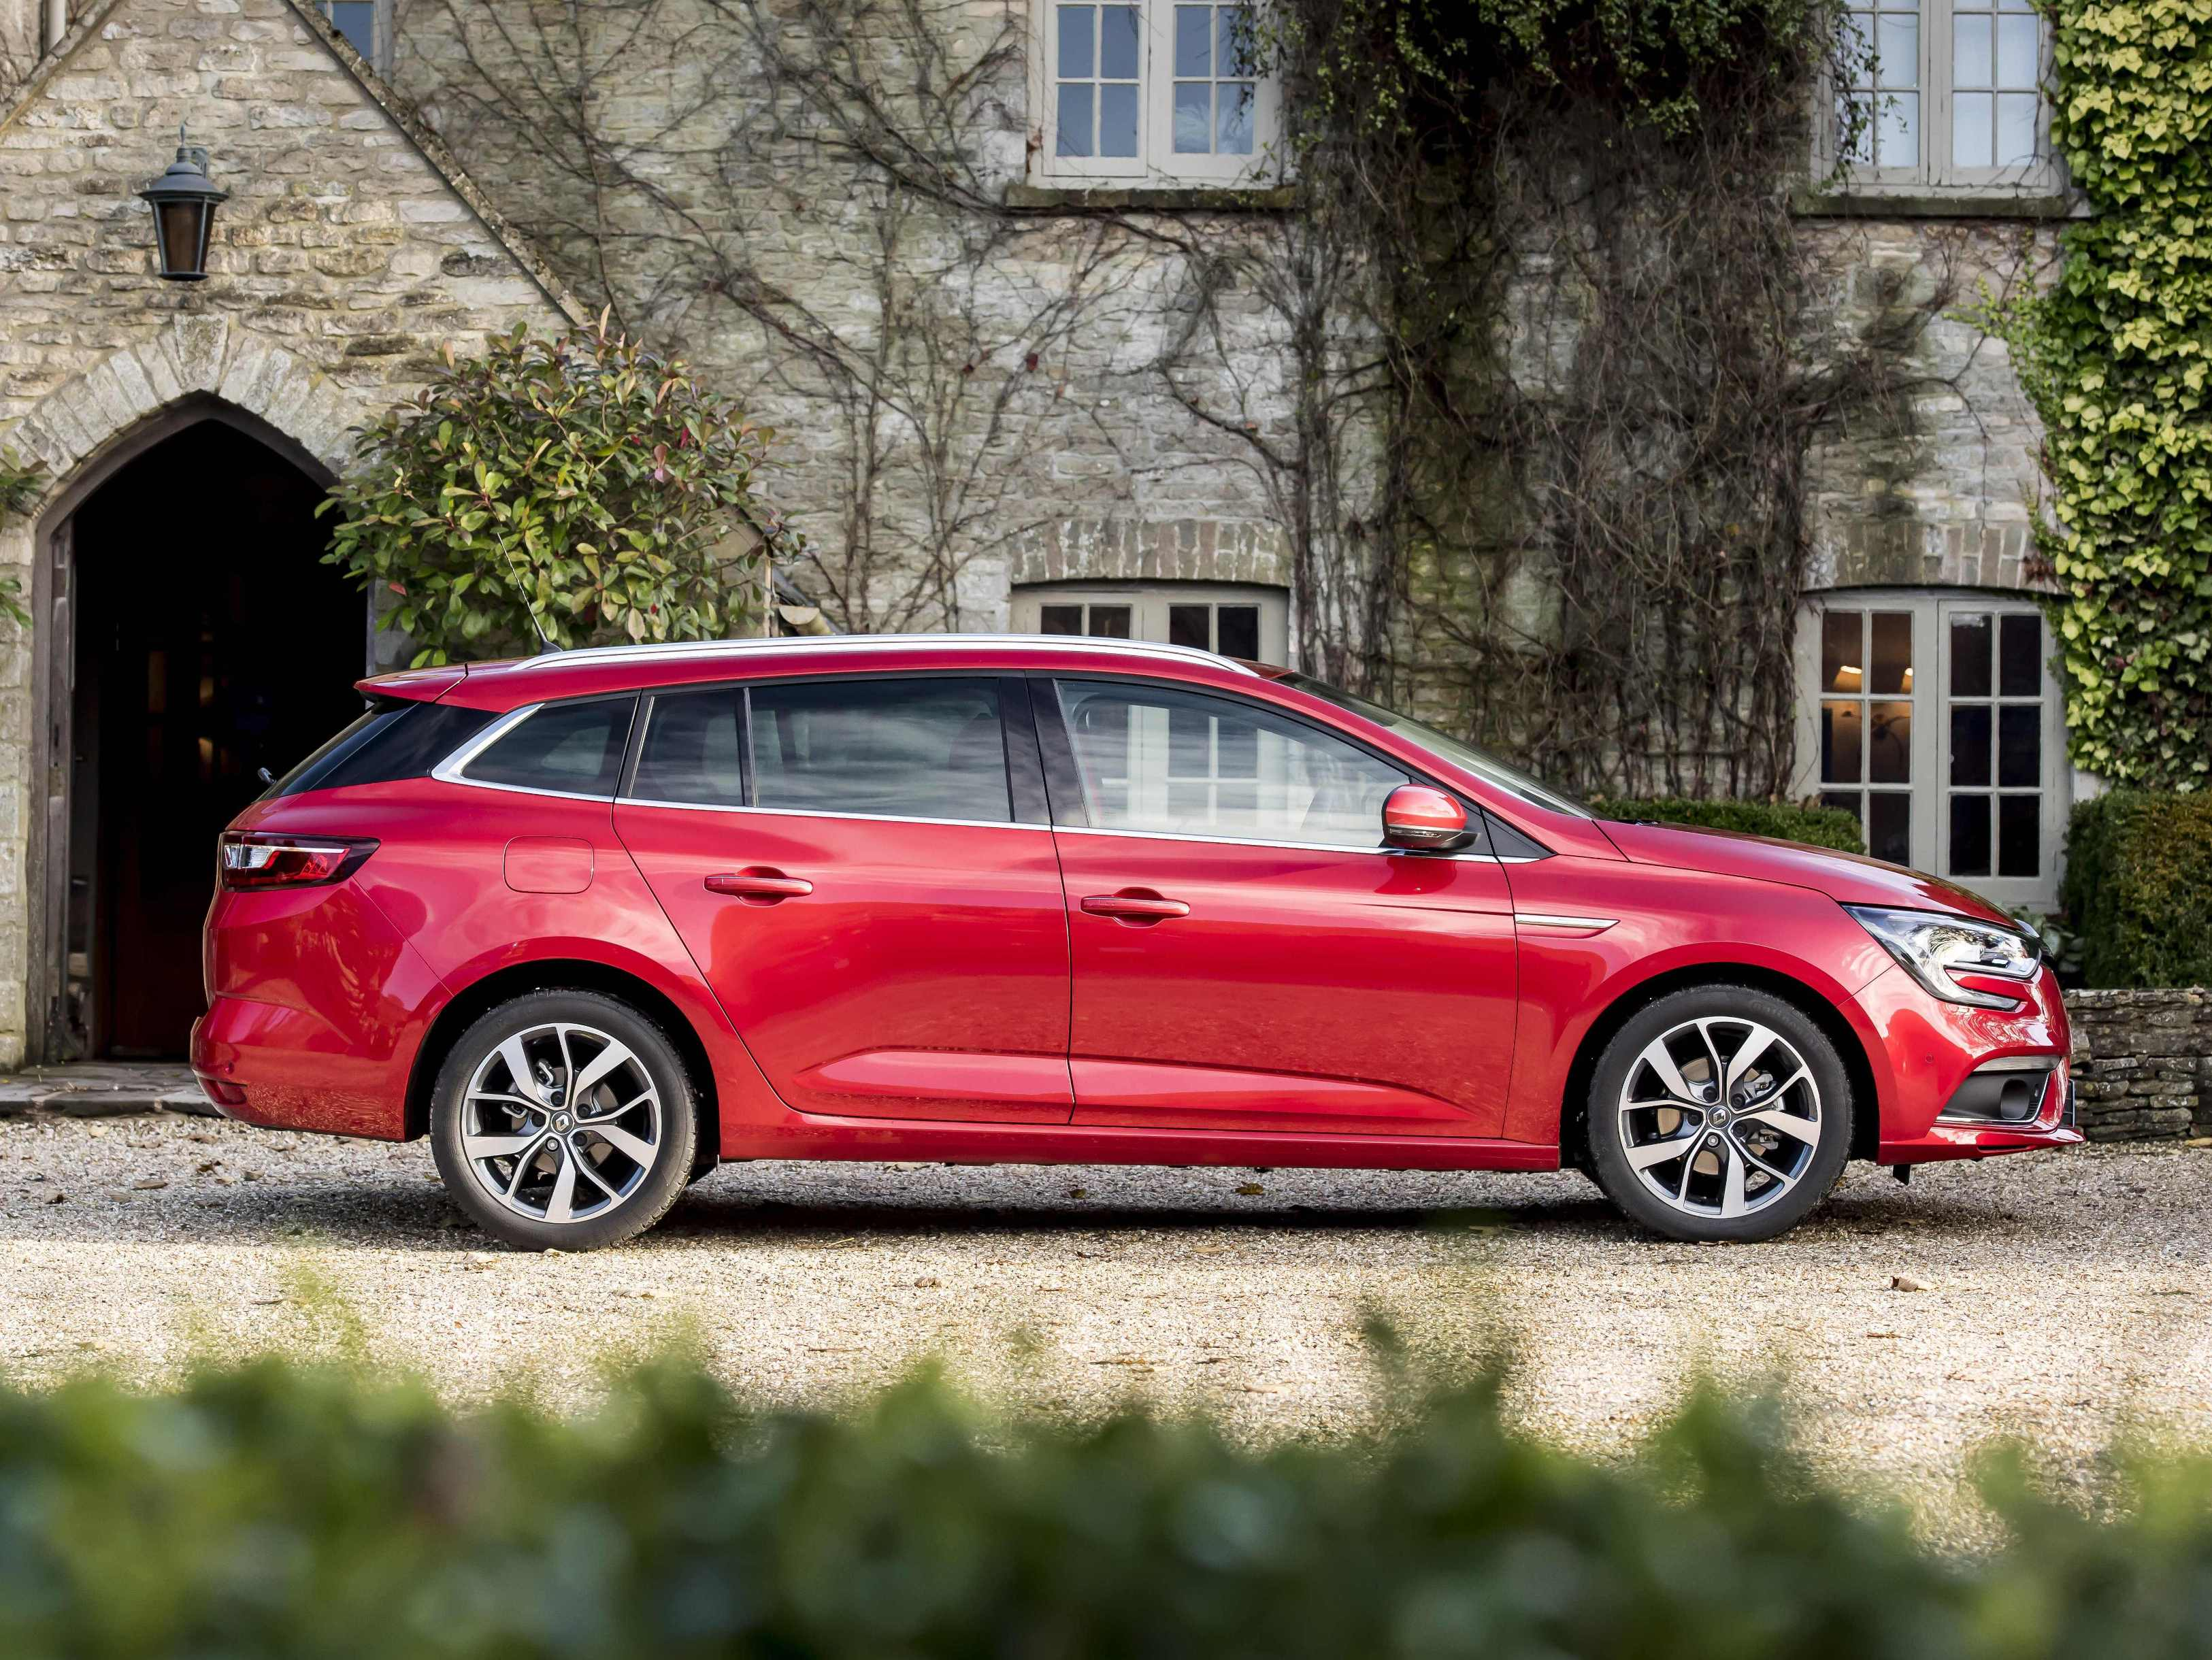 renaults-new-megane-sport-tourer-side-view